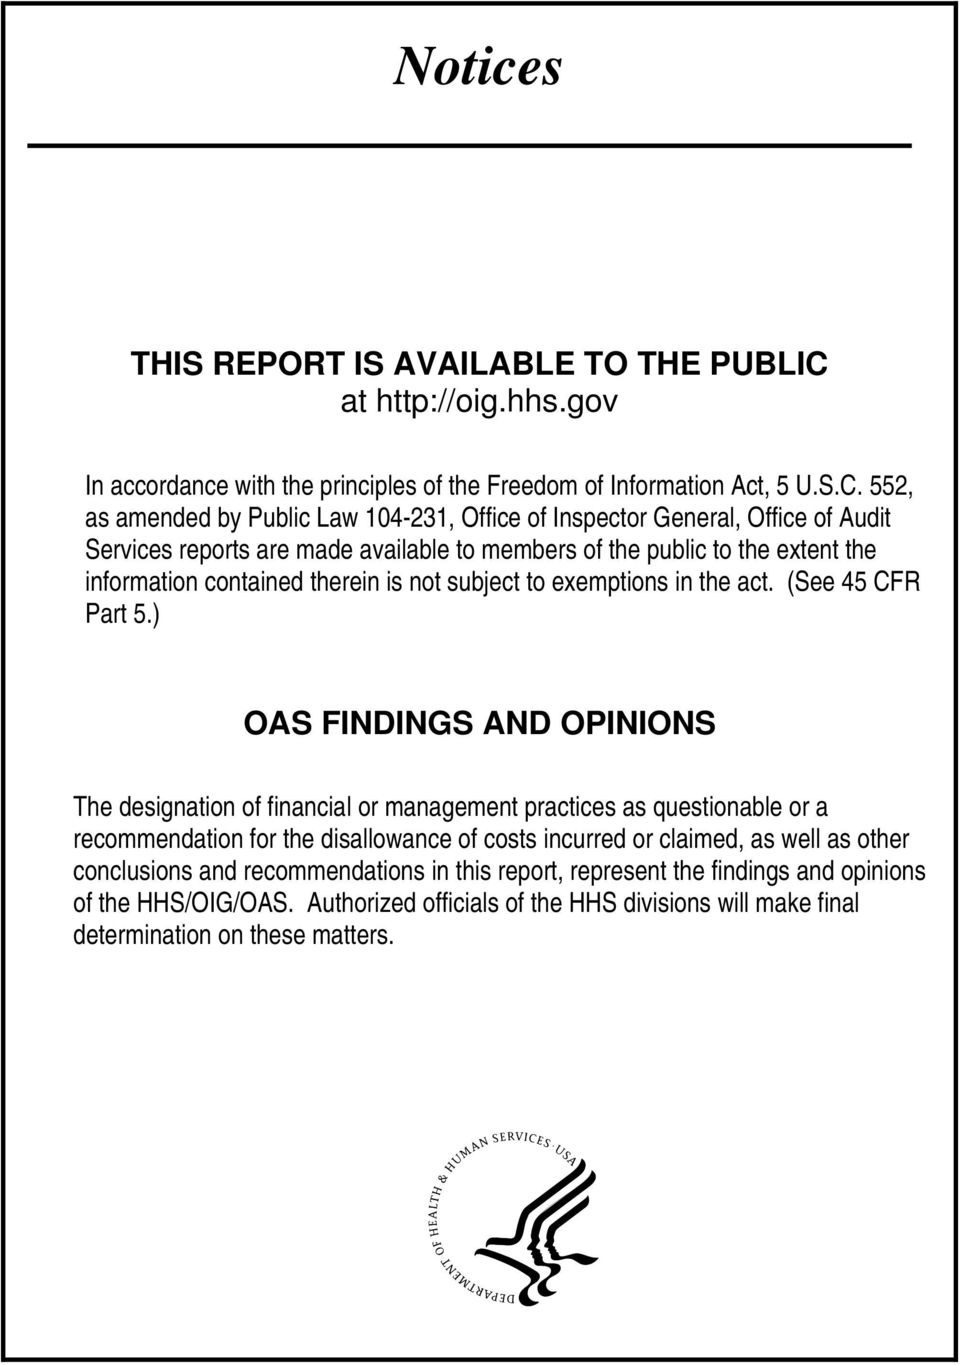 552, as amended by Public Law 104-231, Office of Inspector General, Office of Audit Services reports are made available to members of the public to the extent the information contained therein